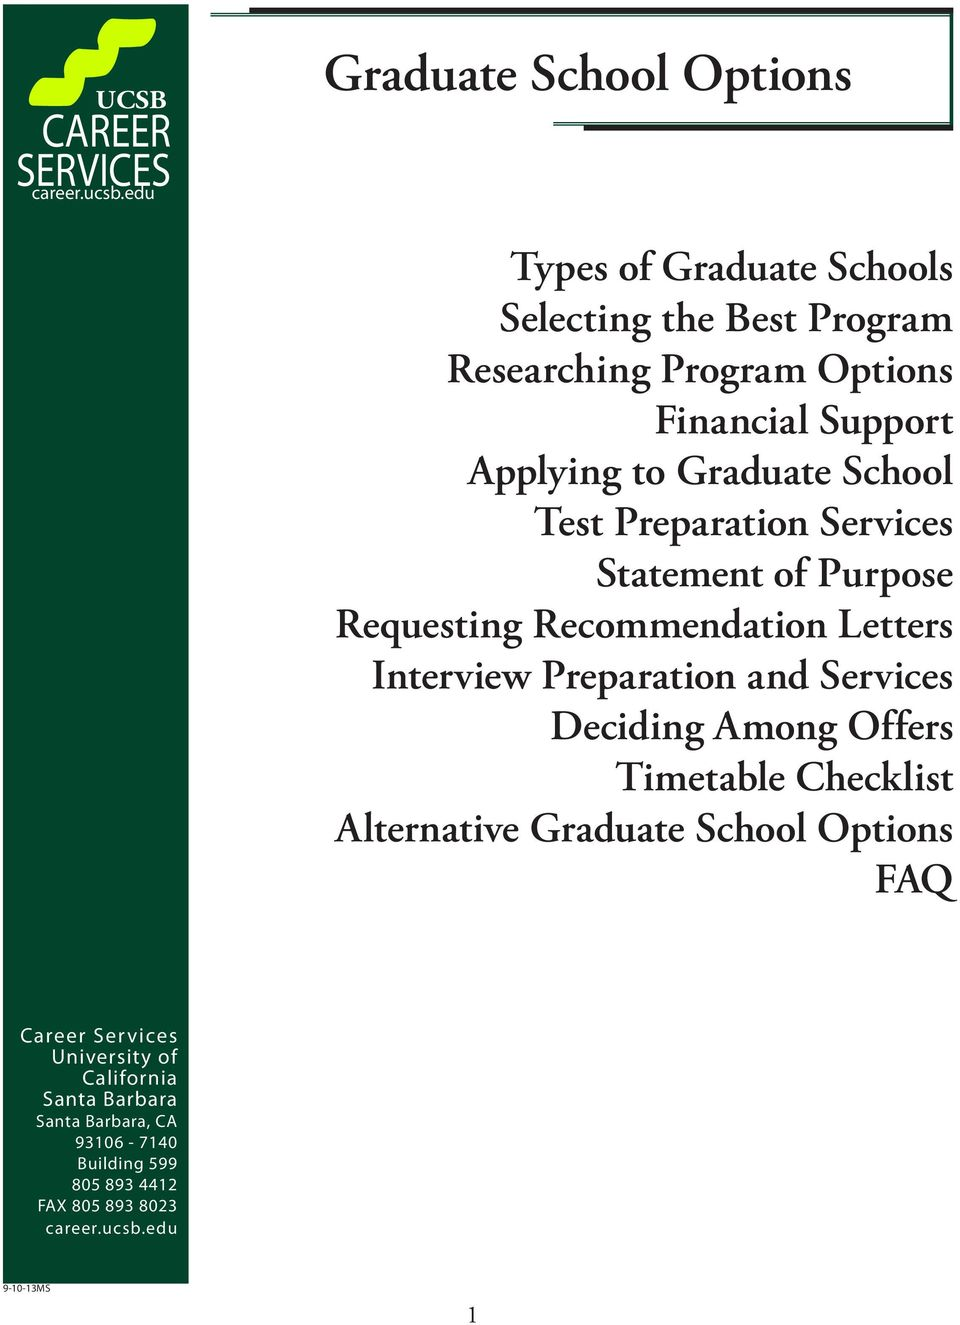 Interview Preparation and Services Deciding Among Offers Timetable Checklist Alternative Graduate School Options FAQ